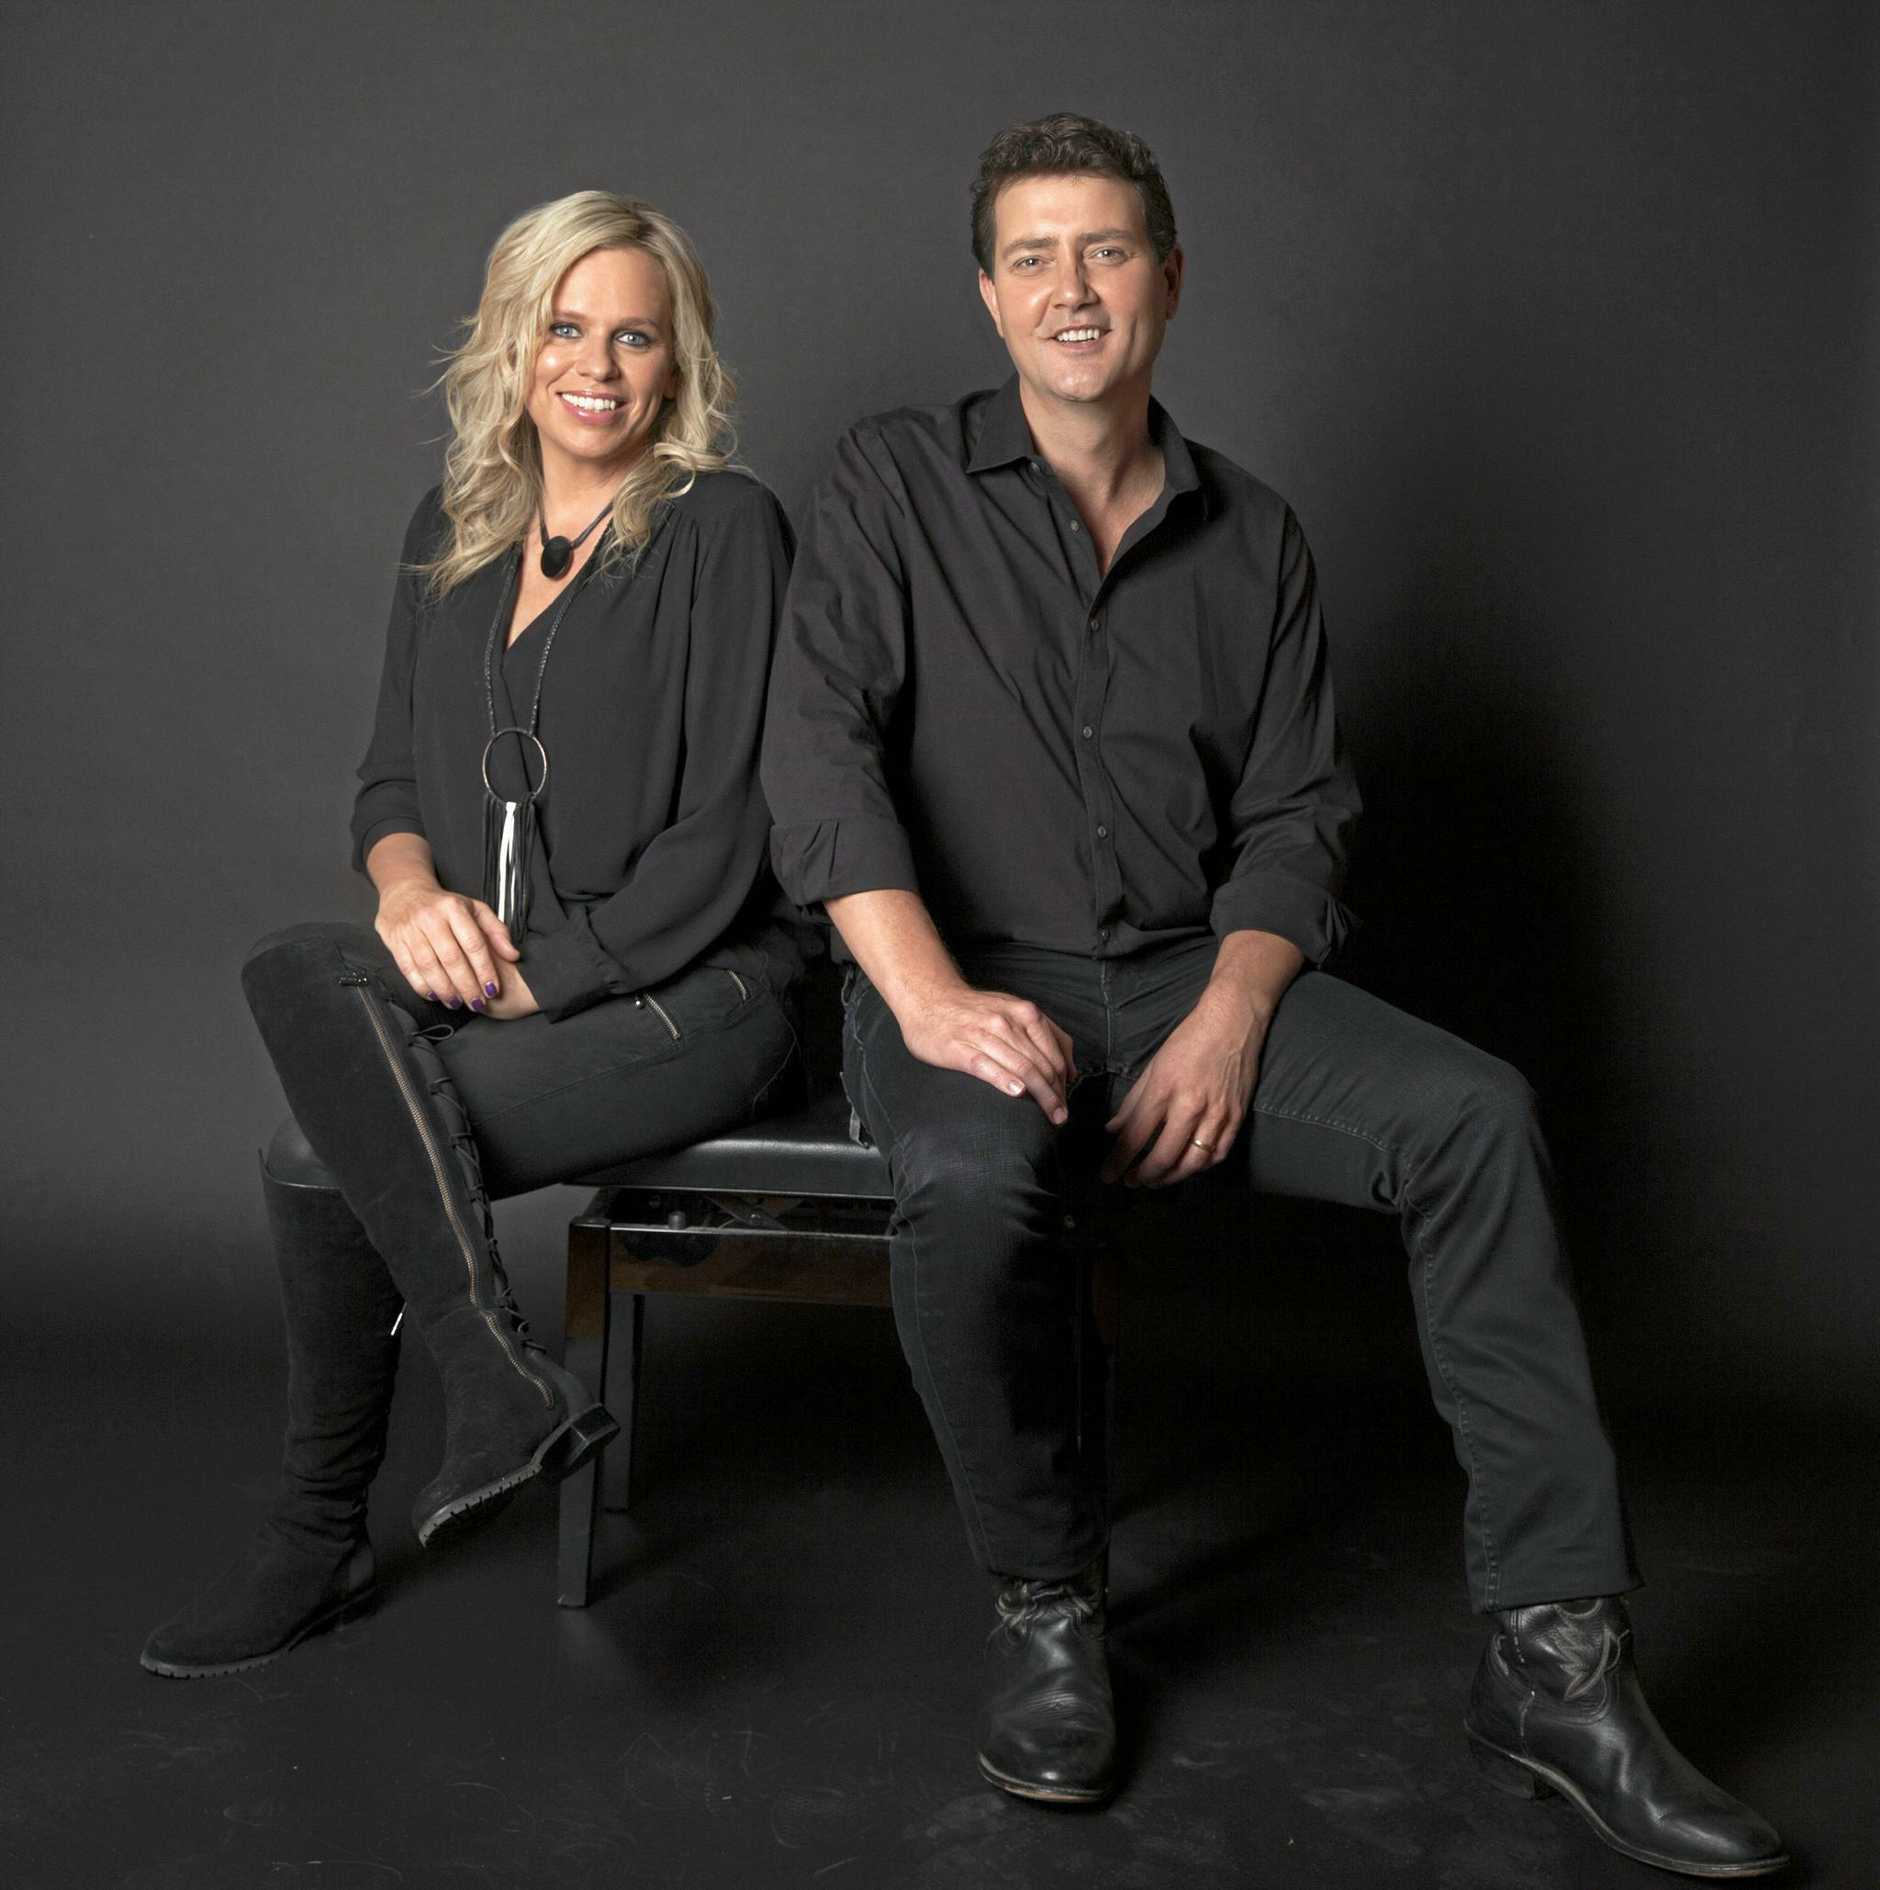 DUO: Beccy Cole and Adam Harvey are touring together to perform songs from their album Great Country Songbook Vol 2. Adam Harvey and Beccy Cole have stayed at the forefront of Australian country music for close to two decades, and the combination of these two dynamic performers has proven to be a hit with live audiences having toured the country on several occasions since their first encounter almost 20 years ago. Adam and Beccy have finally taken their favourite list of country duets to the studio and they have now hit the road with The Great Country Song Book Volume II Tour. At the Ballina RSL Club this Saturday from 8.30pm. Details from ballinarsl.com.au